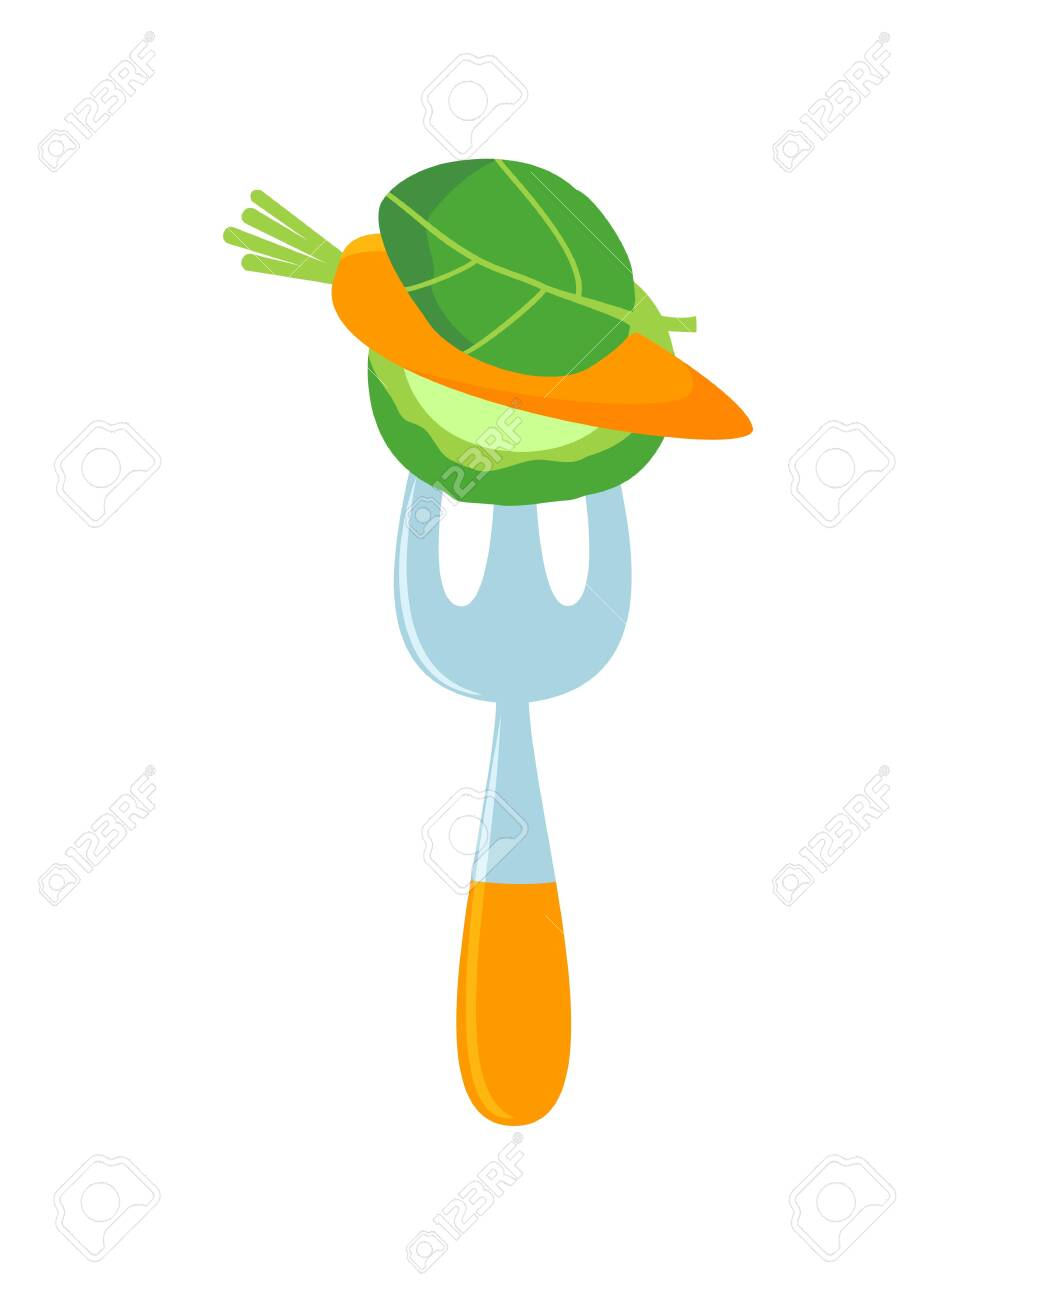 Cartoon fork with vegetables on it. Raw food logo. Vector - 151386536